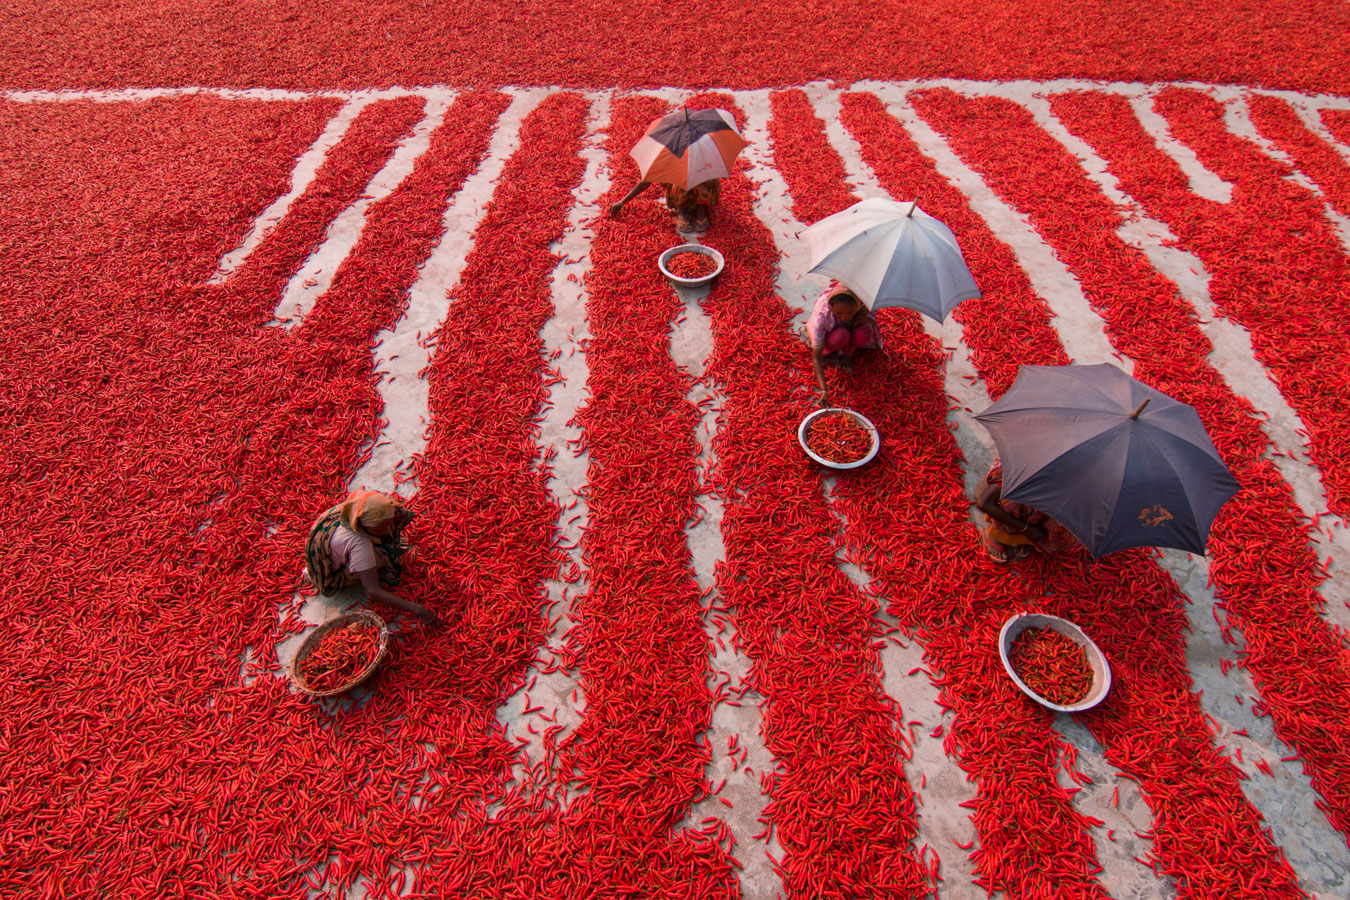 Red Chillies Pickers, © Azim Khan Ronnie, Bangladesh, Street photo Nomination, 1 place, 35AWARDS Photo Contest